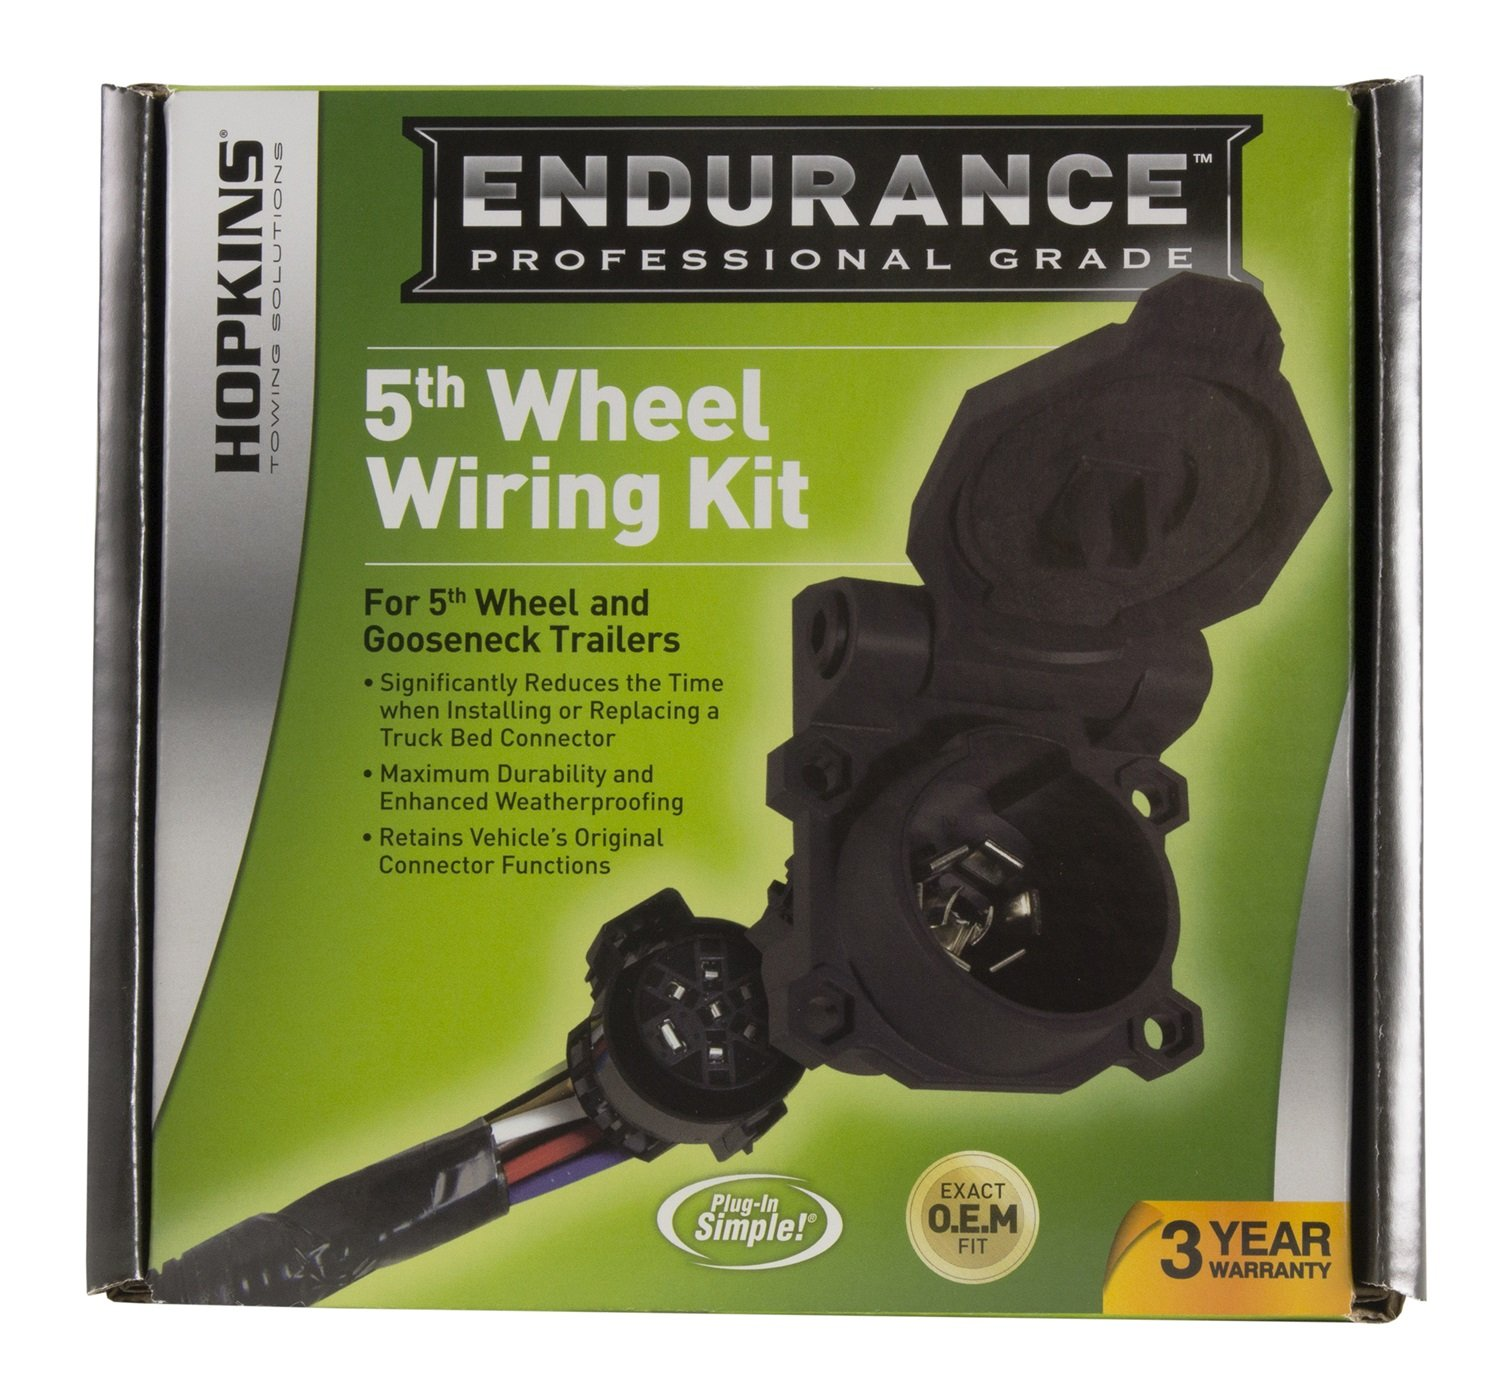 81BZnxZrPFL._SL1500_ amazon com hopkins 41157 endurance 5th wheel wiring kit automotive truck camper wiring harness at mifinder.co